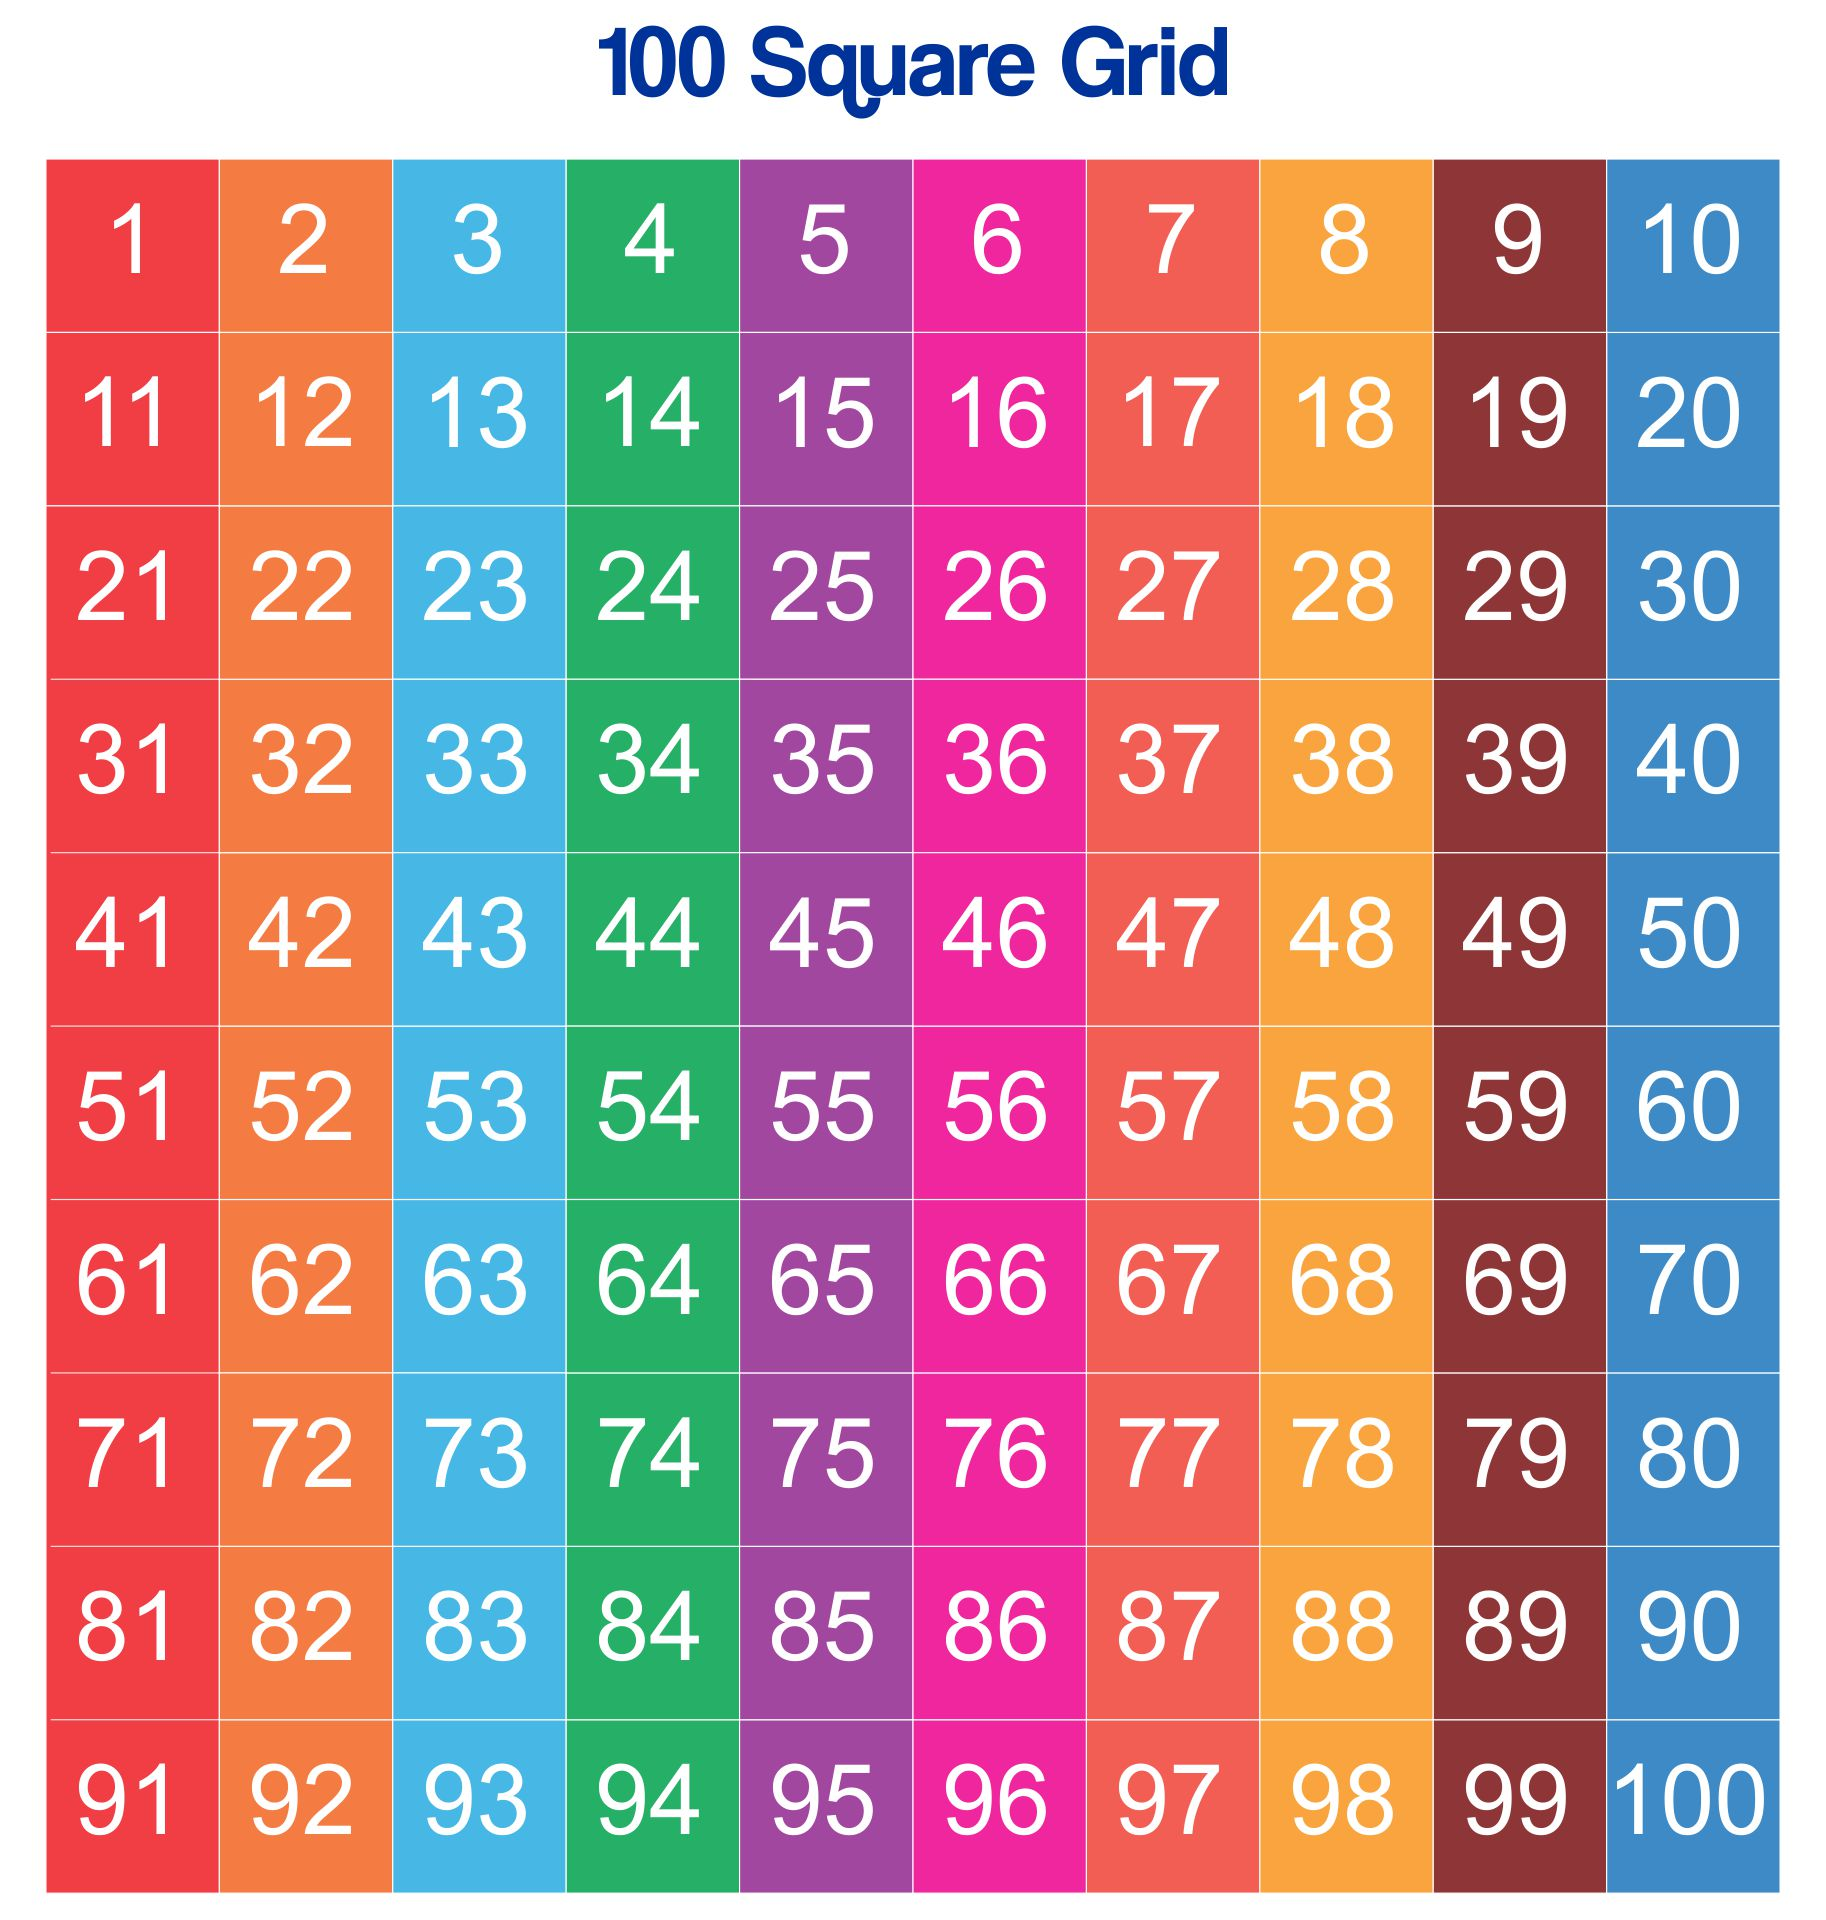 Hundred Printable 100 Square Grid